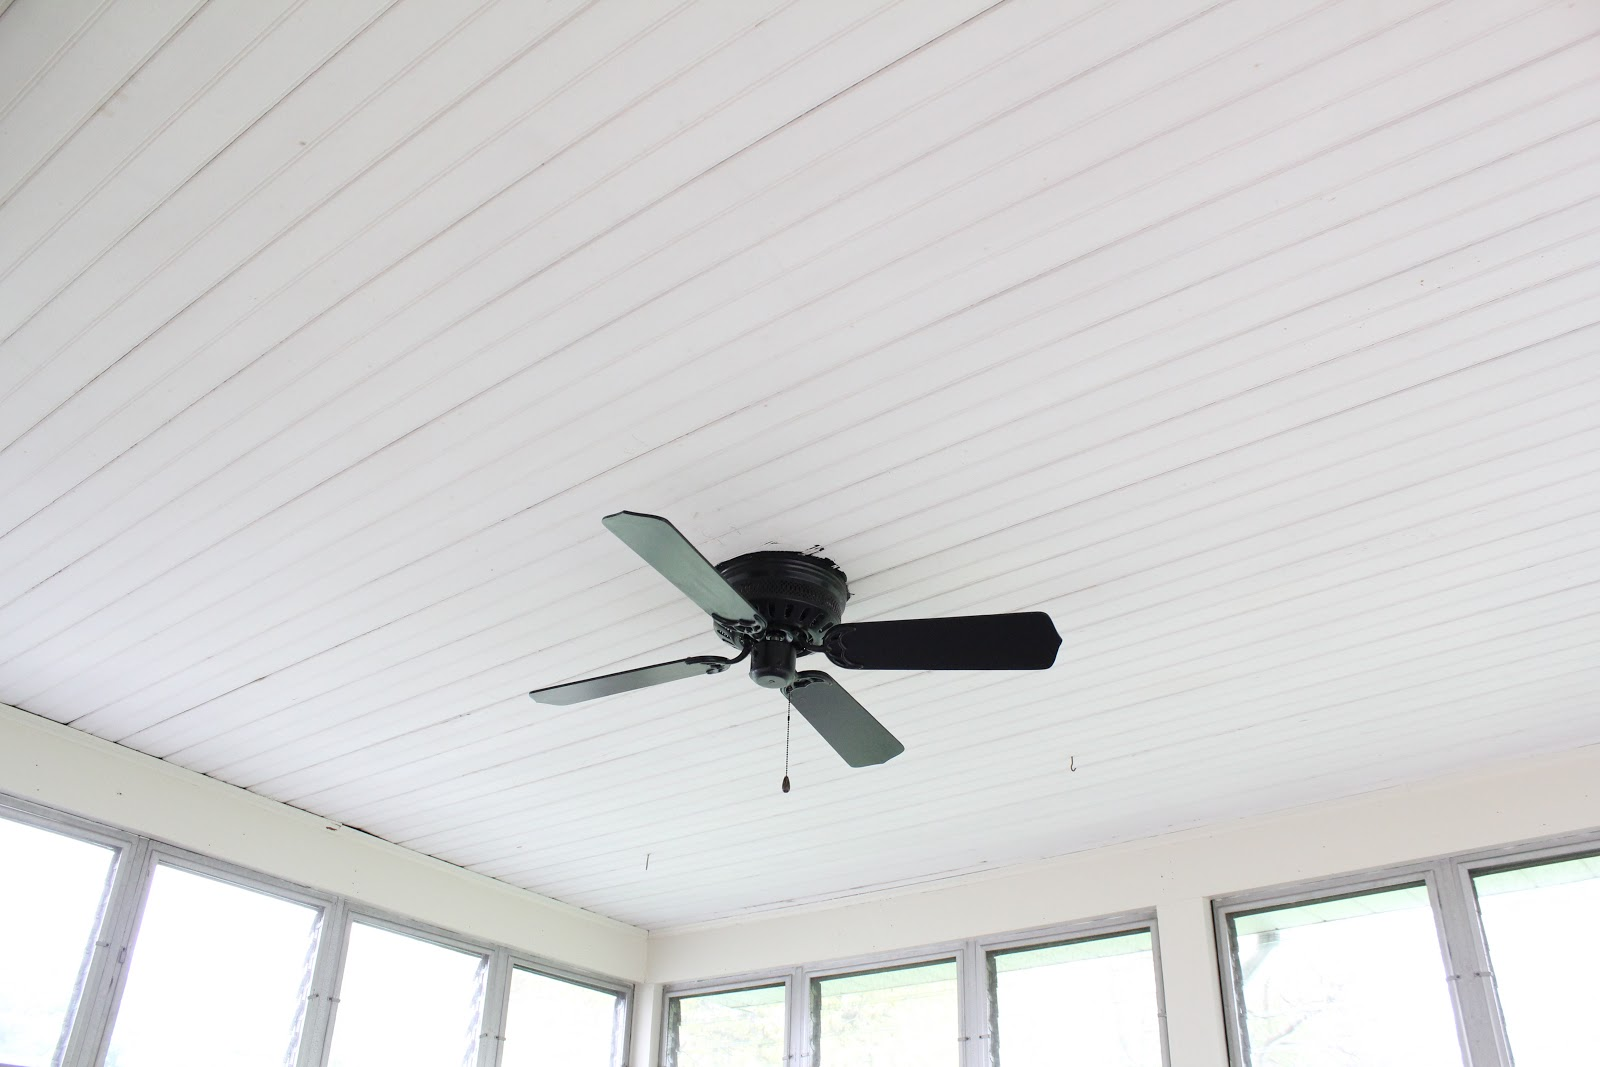 test: painting a ceiling fan